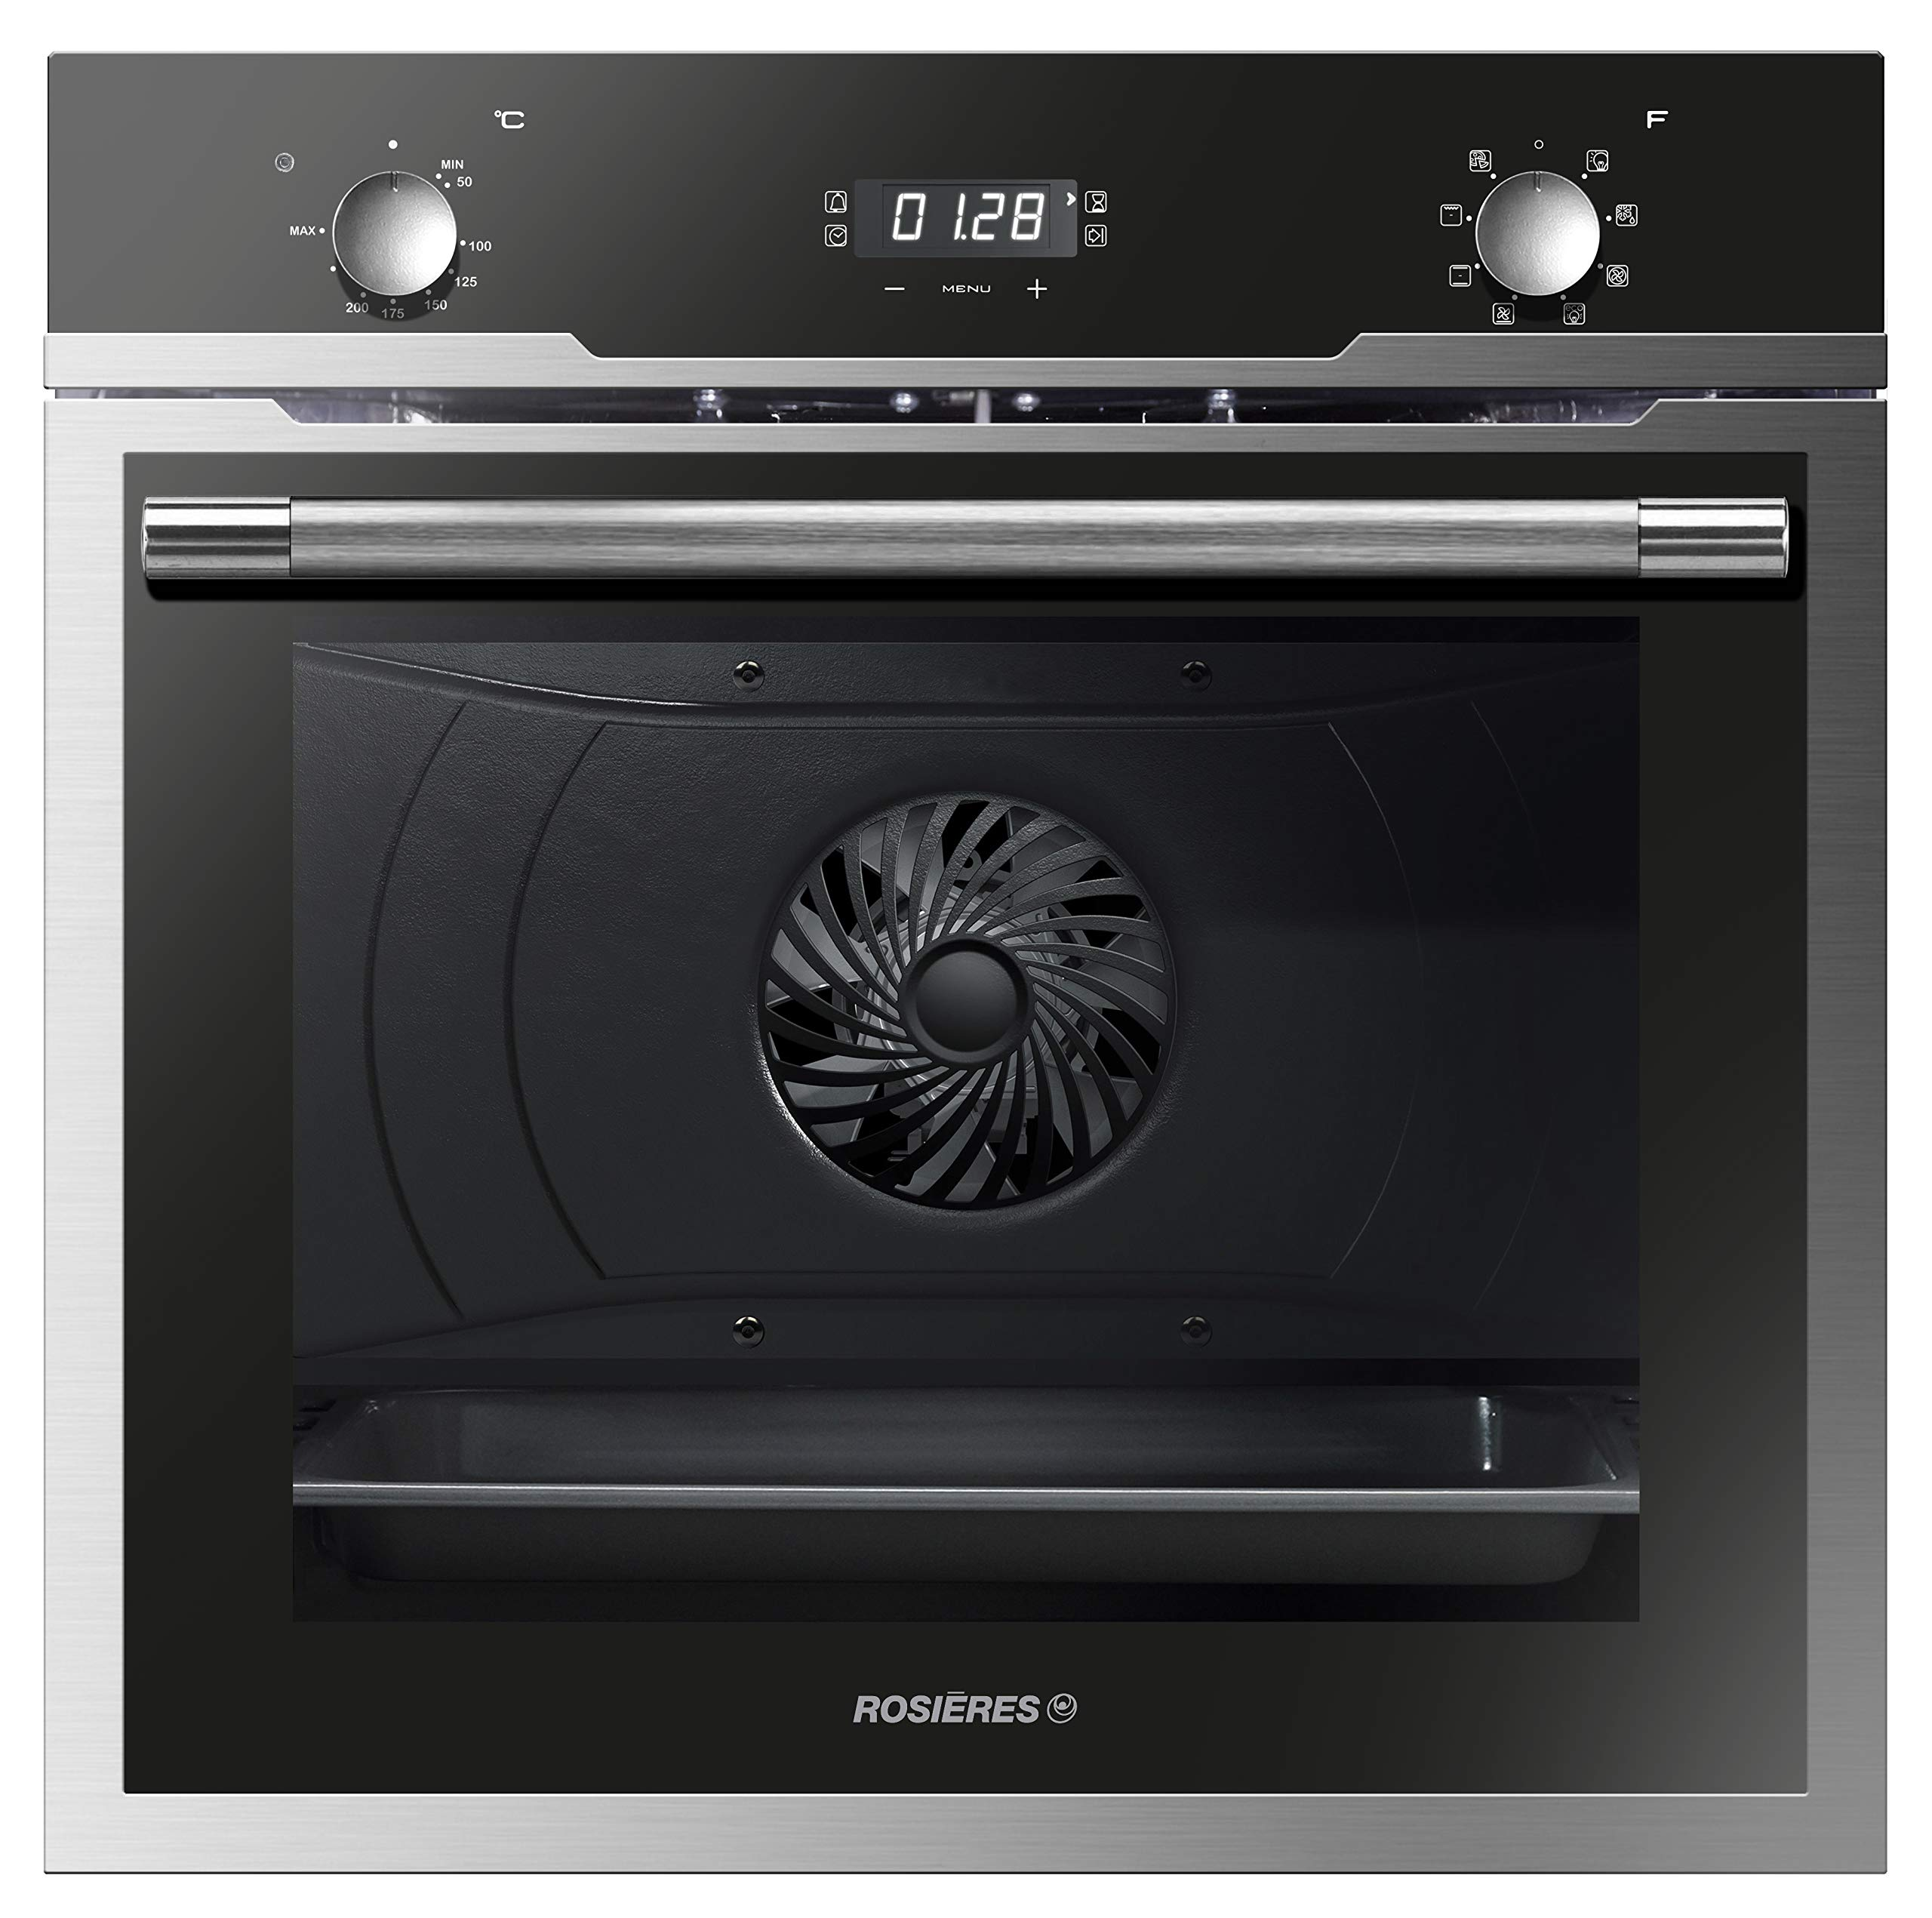 Stainless steel built-in-oven 68 L ROSIERES by ROSIERES